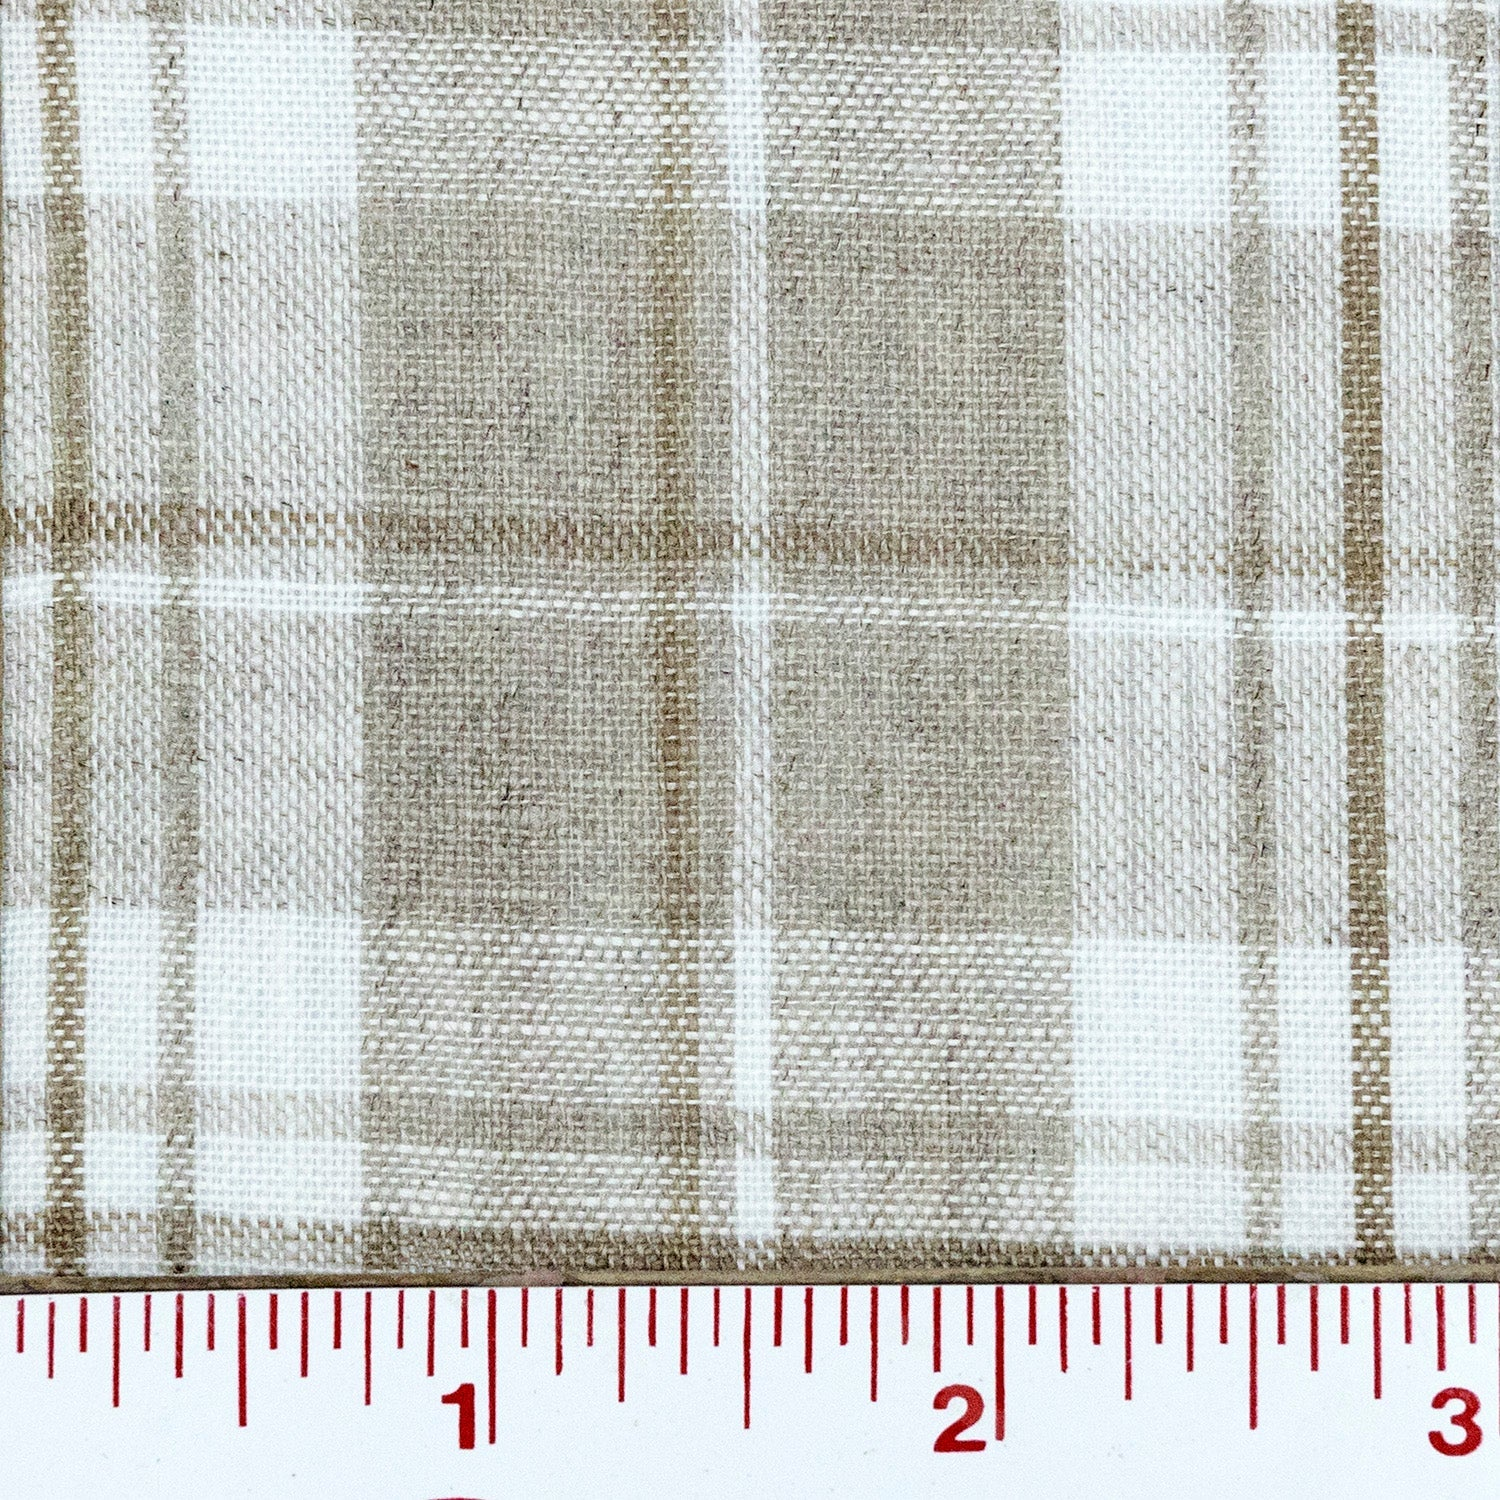 Natural Light Weight Checked Linen - $14.00 yd.